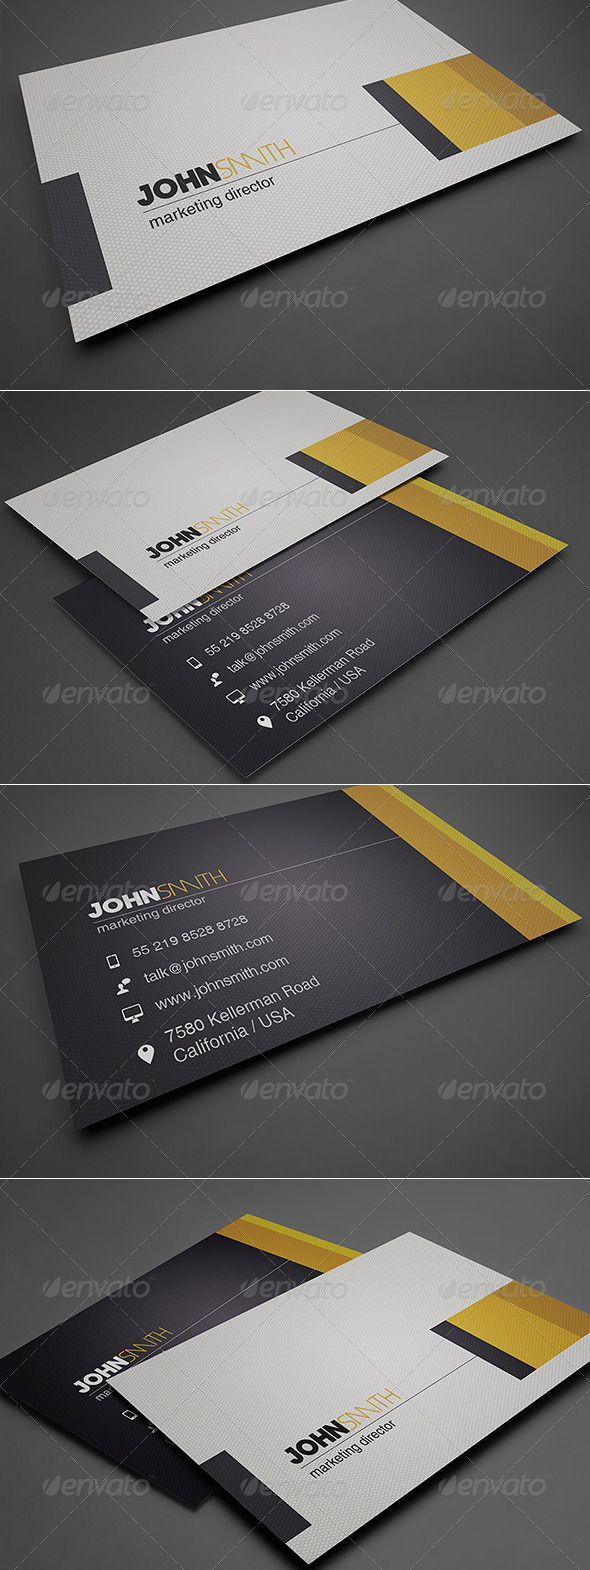 GraphicRiver Simple Business Card 8564794